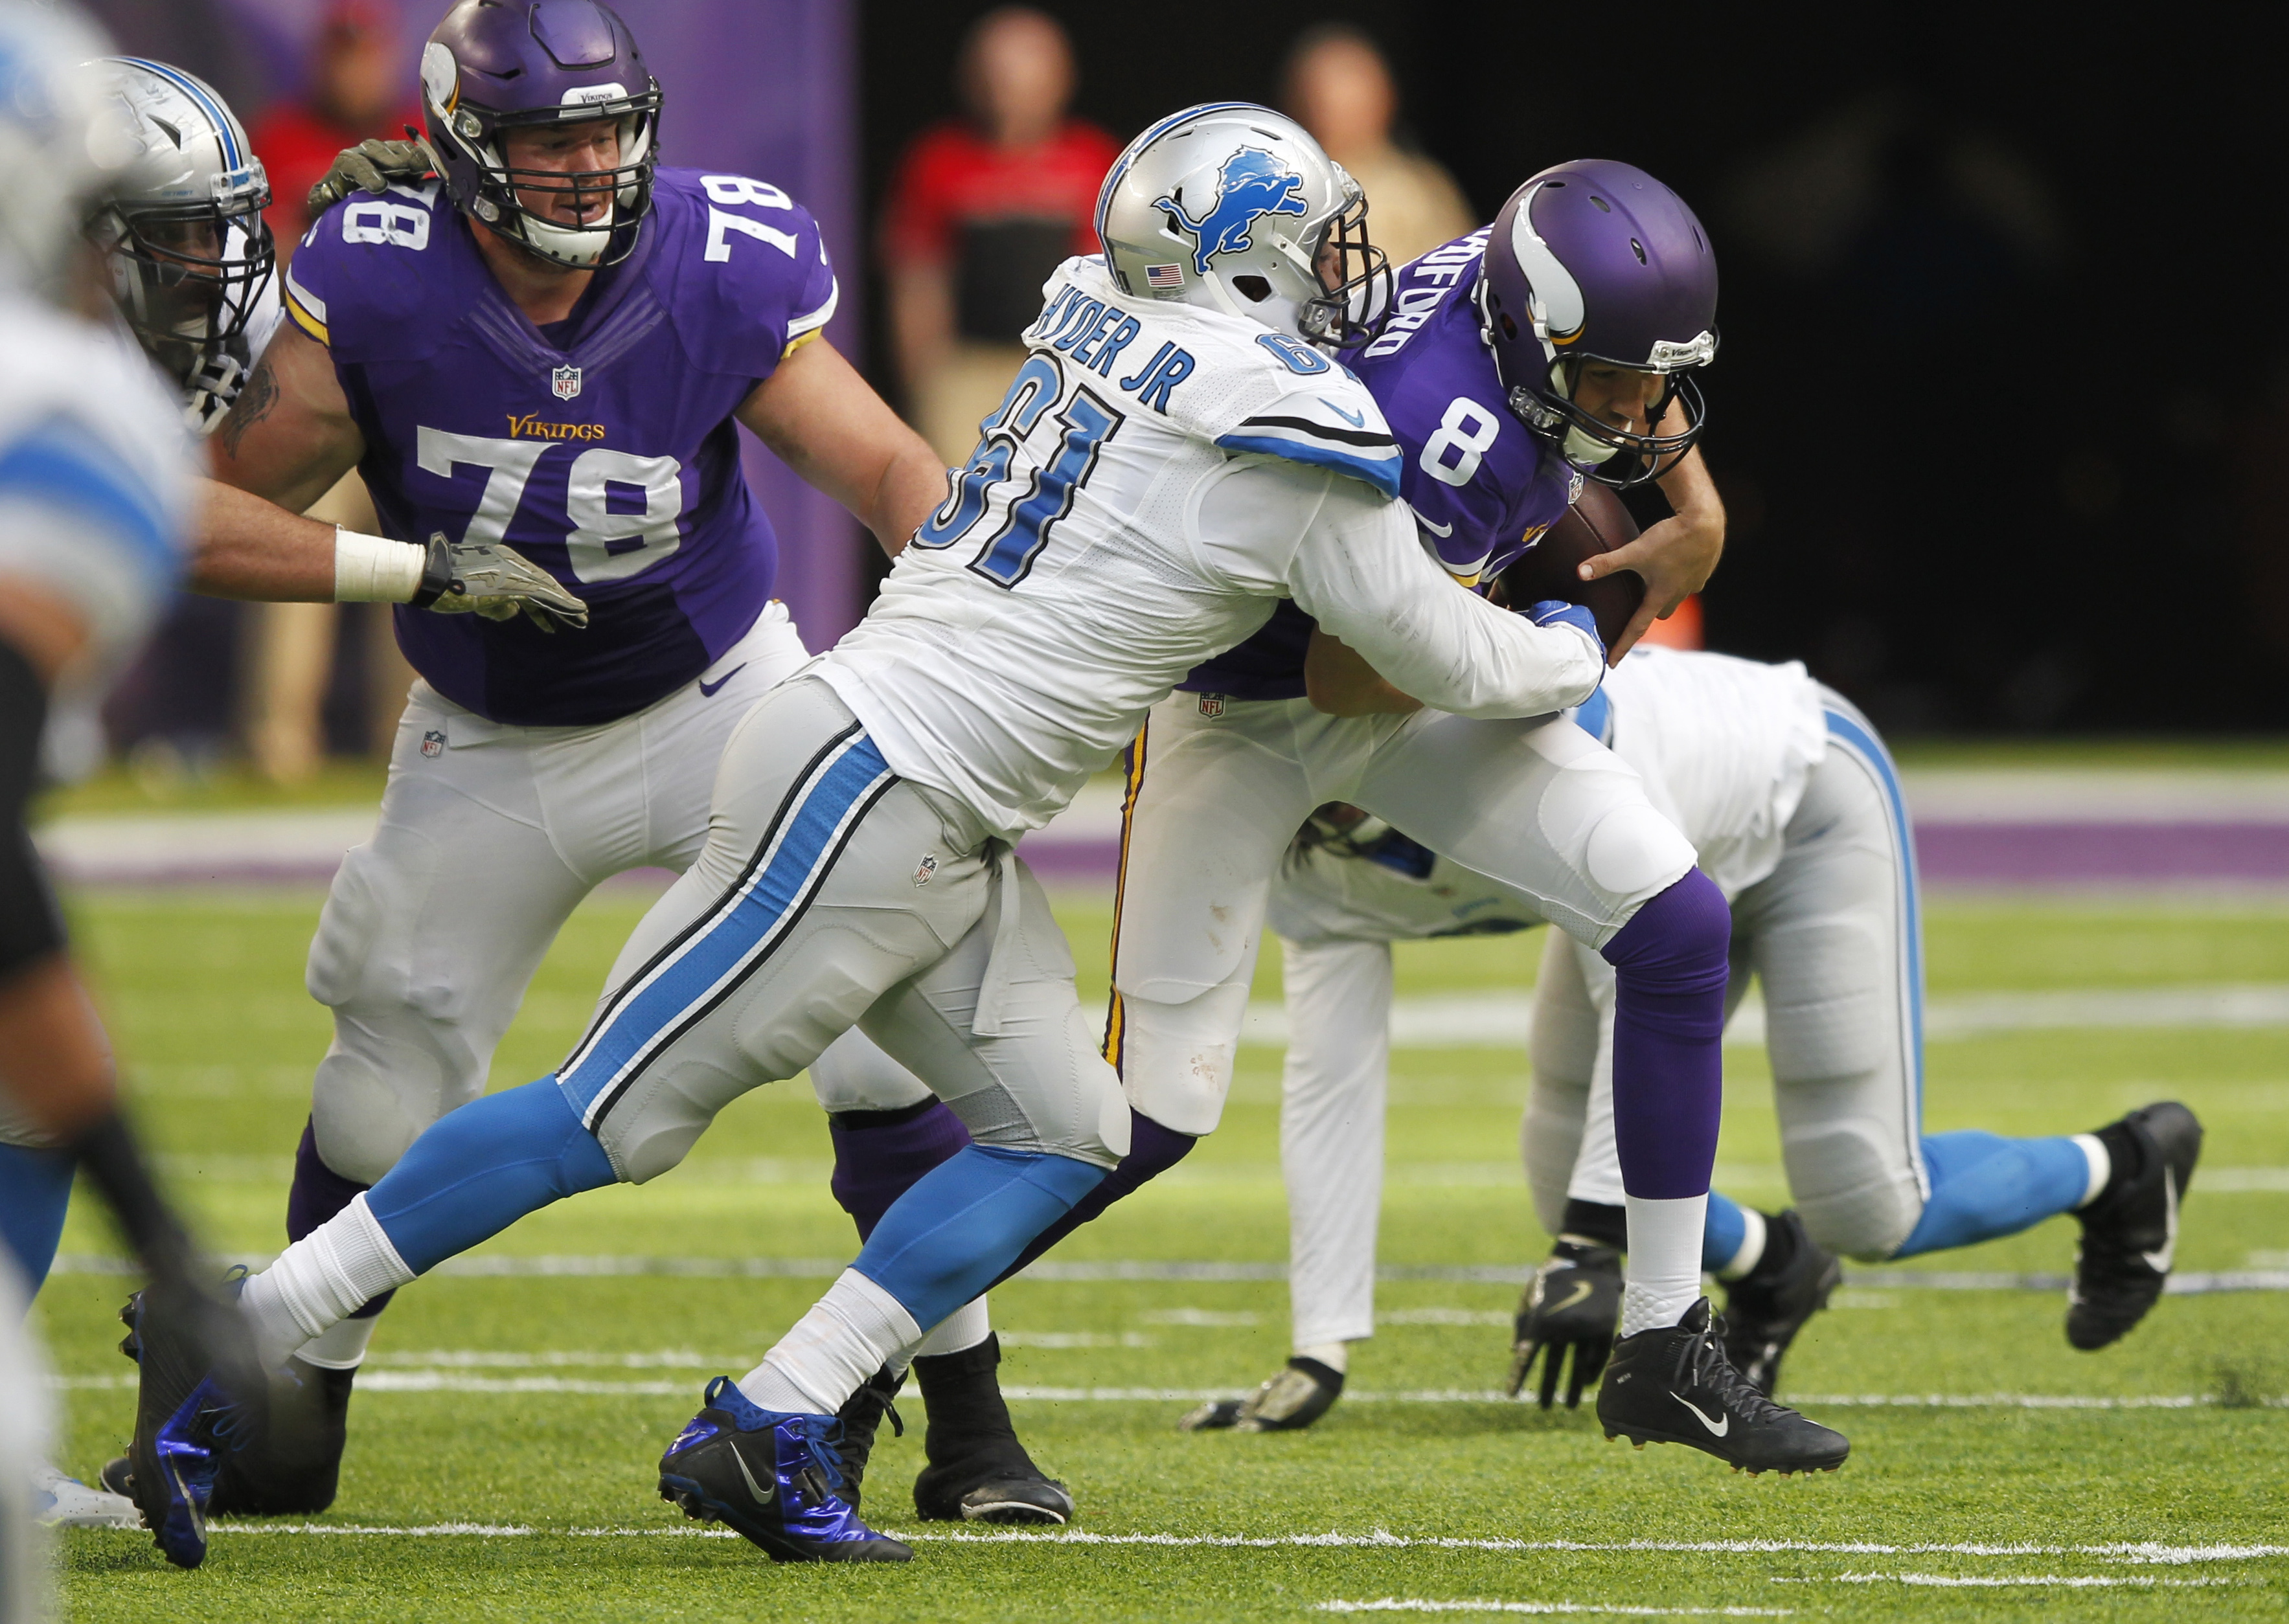 FILE - In this Nov. 6, 2016, file photo, Minnesota Vikings quarterback Sam Bradford (8) is sacked by Detroit Lions defensive end Kerry Hyder, left, during the second half of an NFL football game, in Minneapolis. Overshadowed by the injuries and ineffectiv